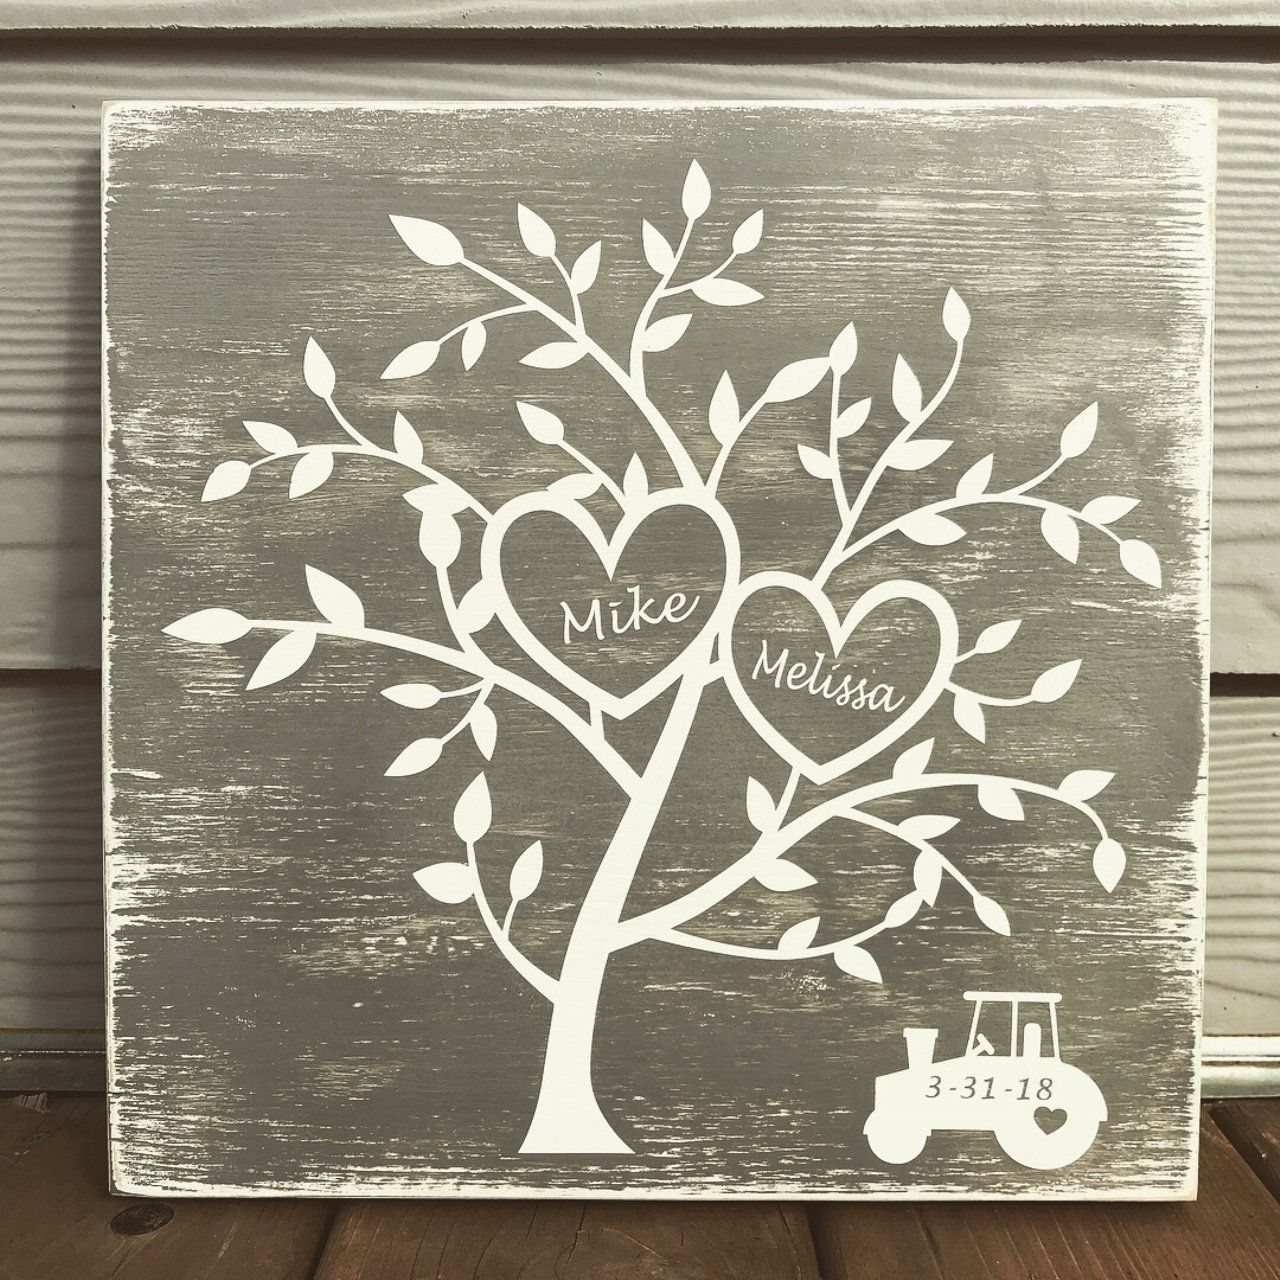 Tree Of Life Wood Wood Wall Hanging Family Tree Sign Wedding Wooden Sign Personalized Family Tree Wall Art Custom Wedding Sign Wedding Date Family Tree Wall Art Family Tree Wall Hanging Custom Wall Art